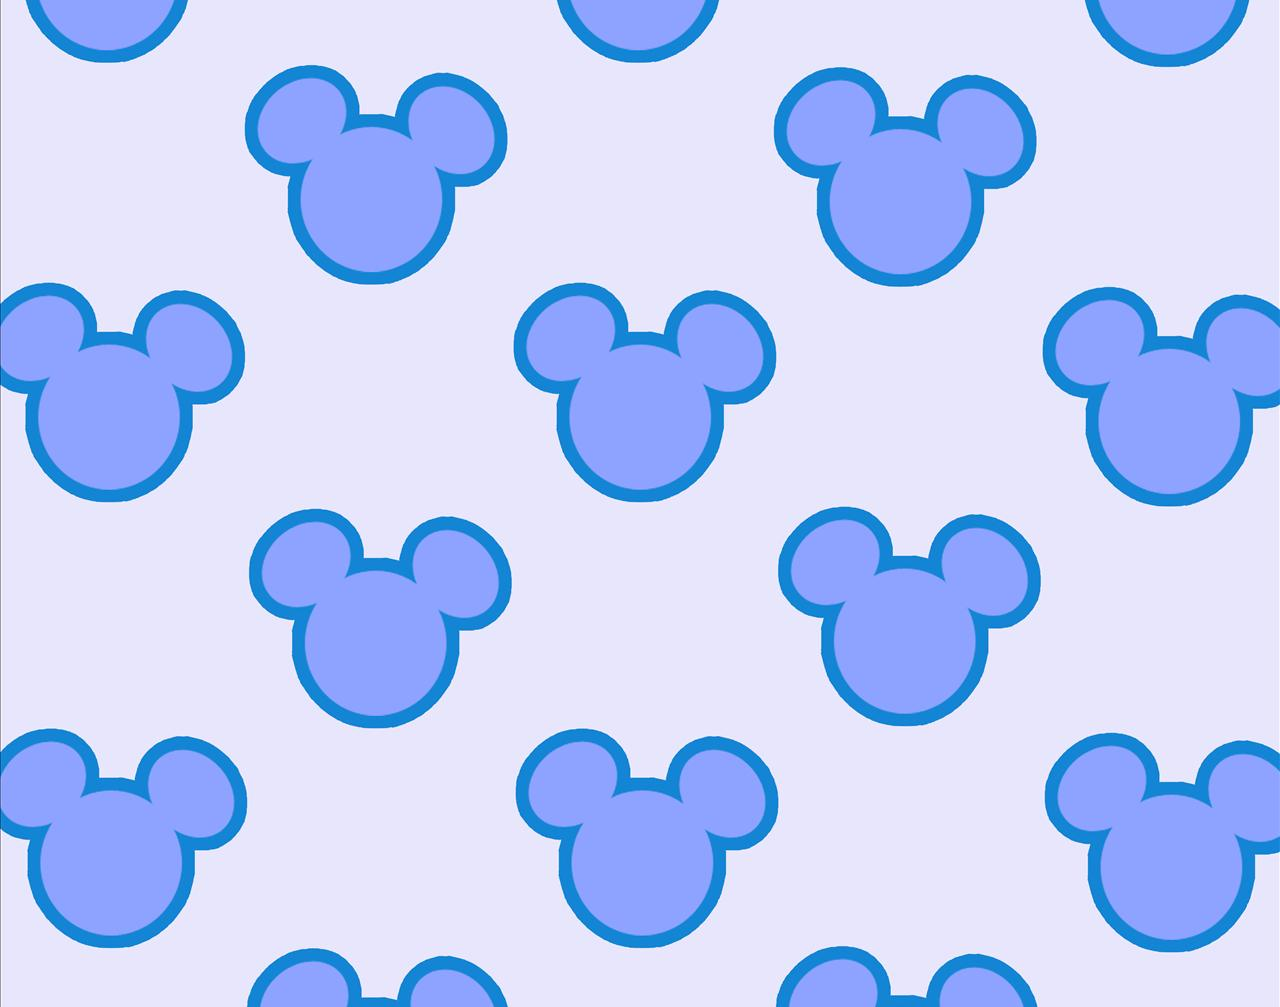 Free Download Baby Mickey Mouse Wallpaper 1418 Hd Wallpapers In Cartoons Imagesci 1280x1007 For Your Desktop Mobile Tablet Explore 49 Baby Mickey Mouse Wallpaper Mickey And Minnie Wallpaper Baby